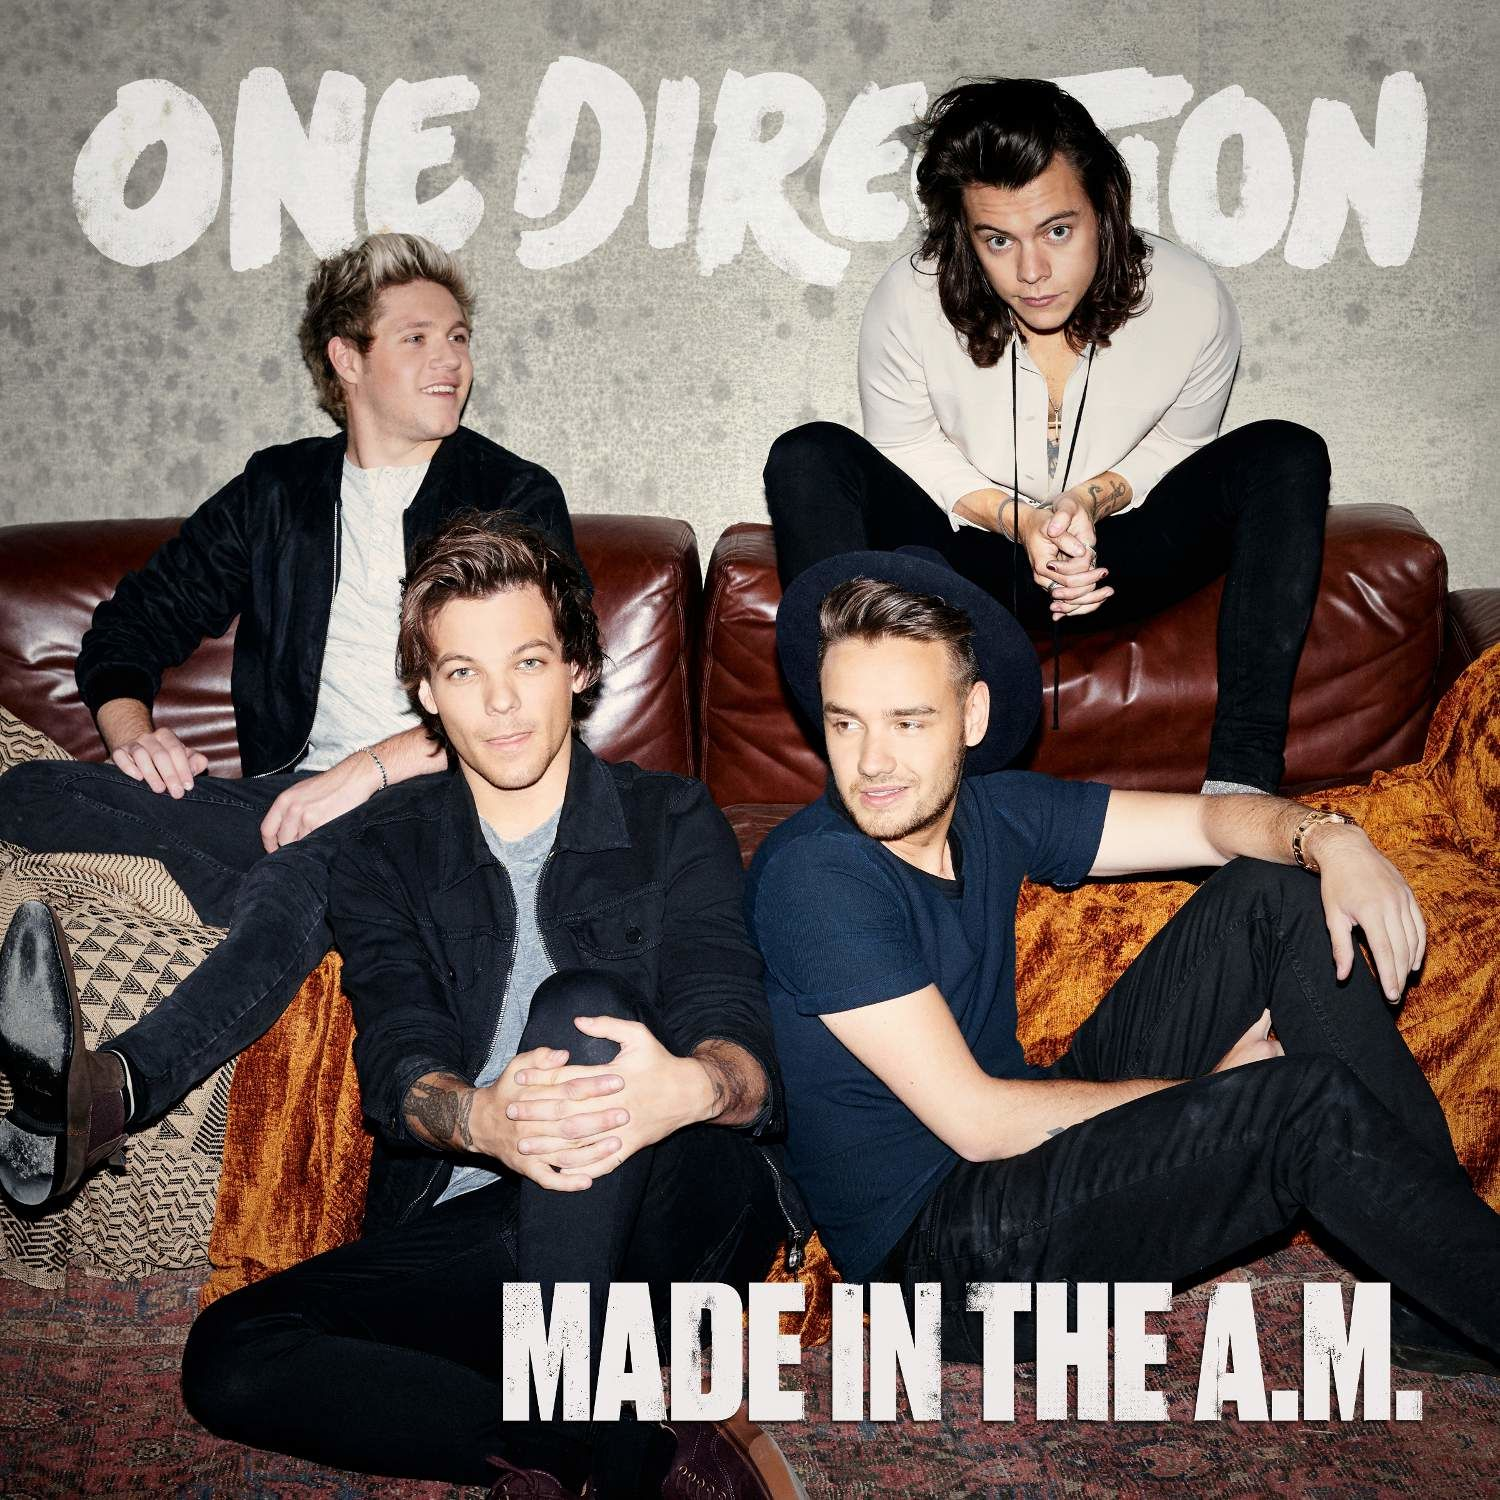 Recensione: One Direction – Made in the a.m.